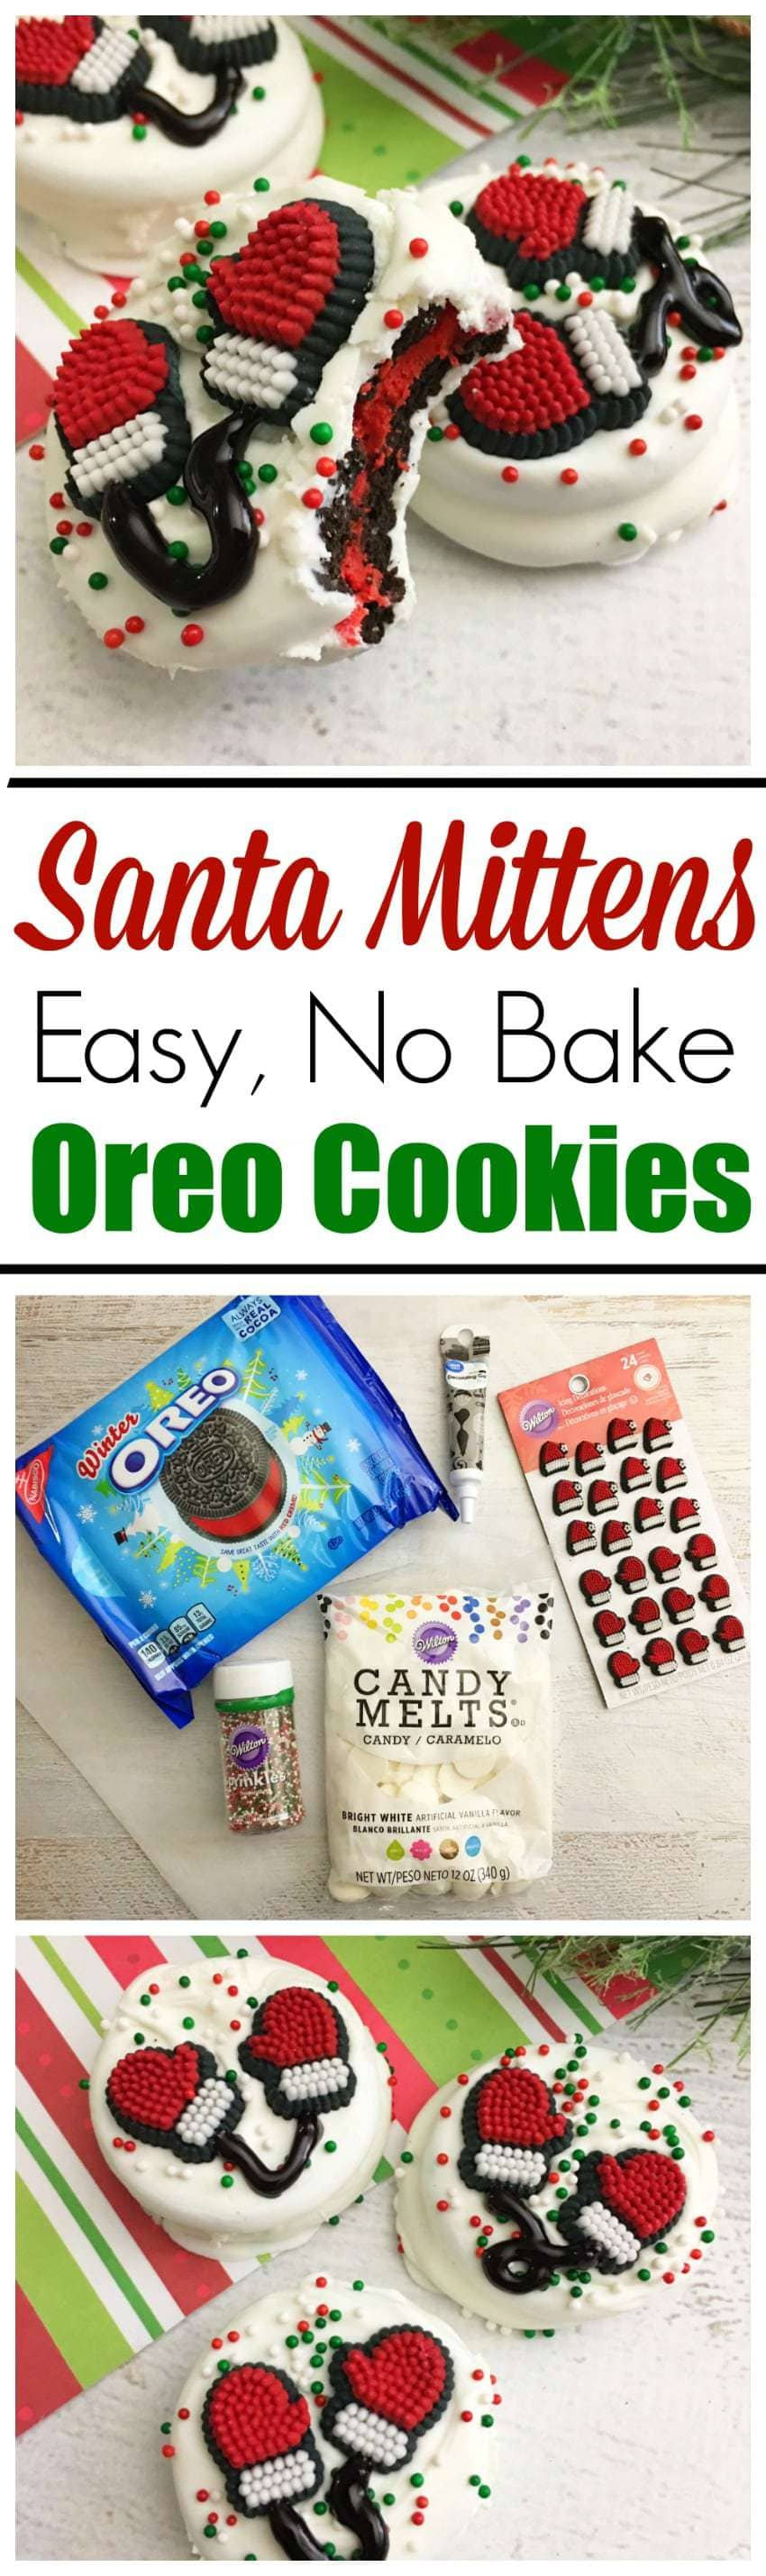 These Santa Mittens Made With Oreo Cookies are so easy to make, with only five ingredients and no baking necessary. #ChristmasCookies #SantaCookies https://www.southernfamilyfun.com/santa-mittens-oreo-cookies/